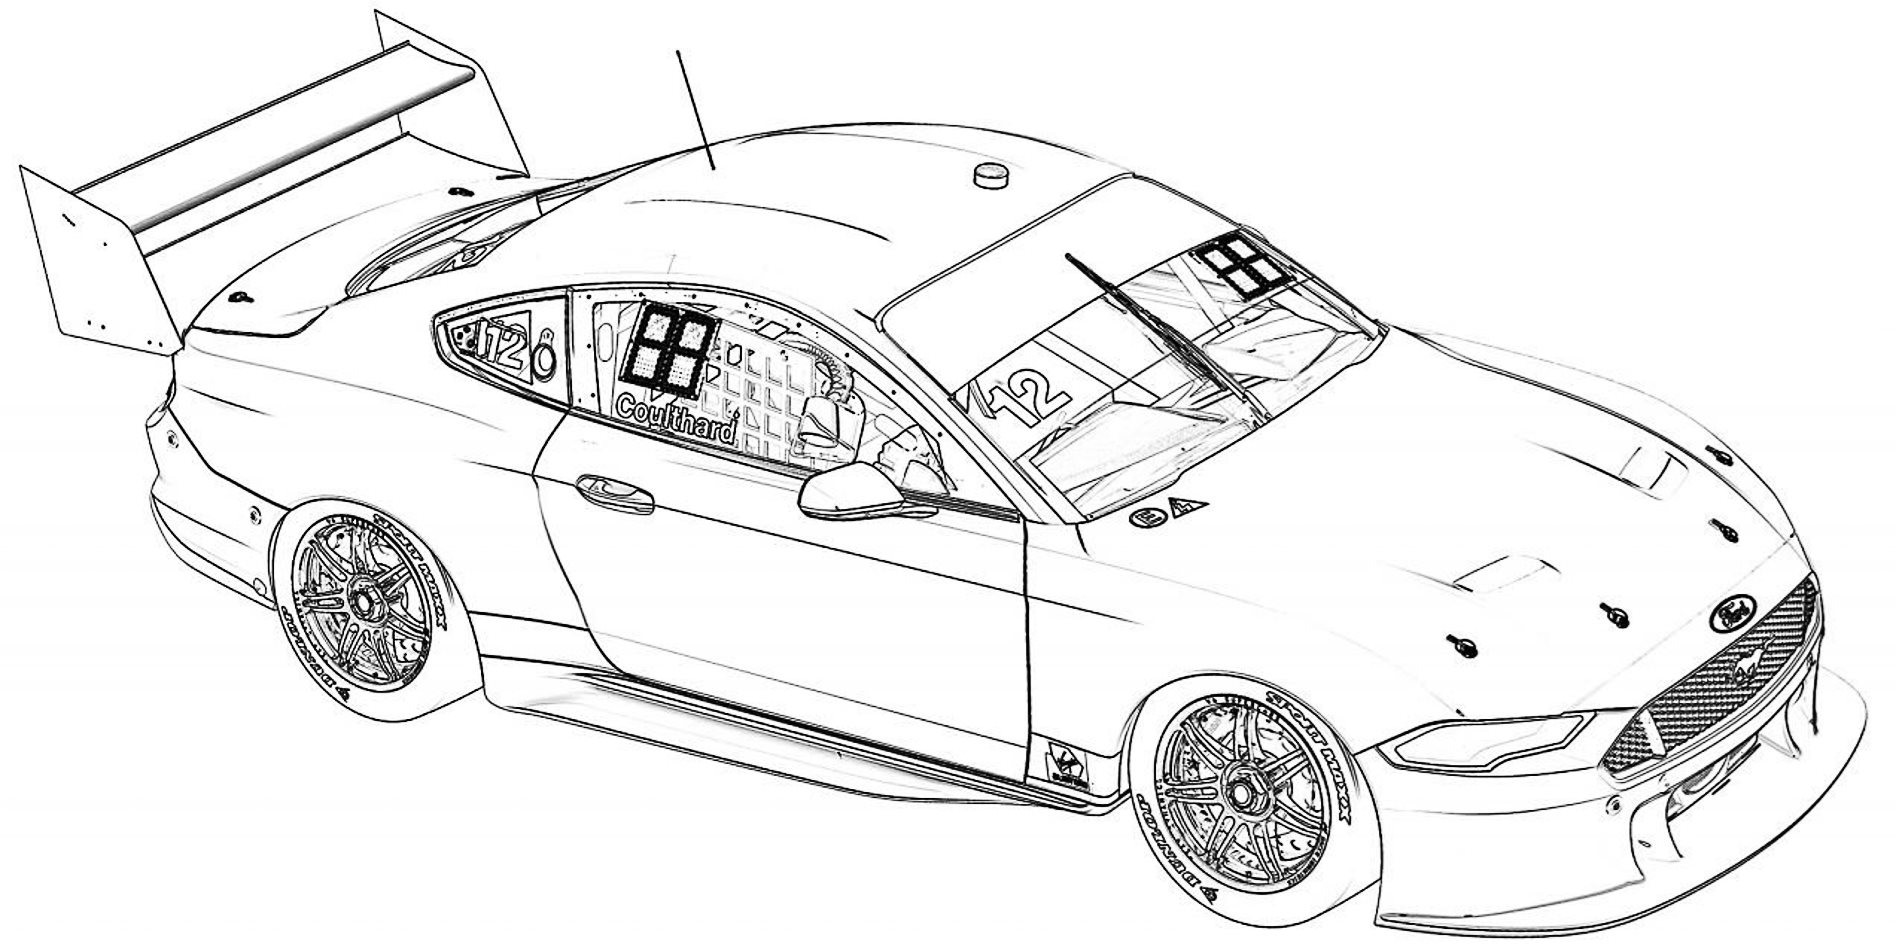 The Best Boredom Busting Car Themed Colouring Books